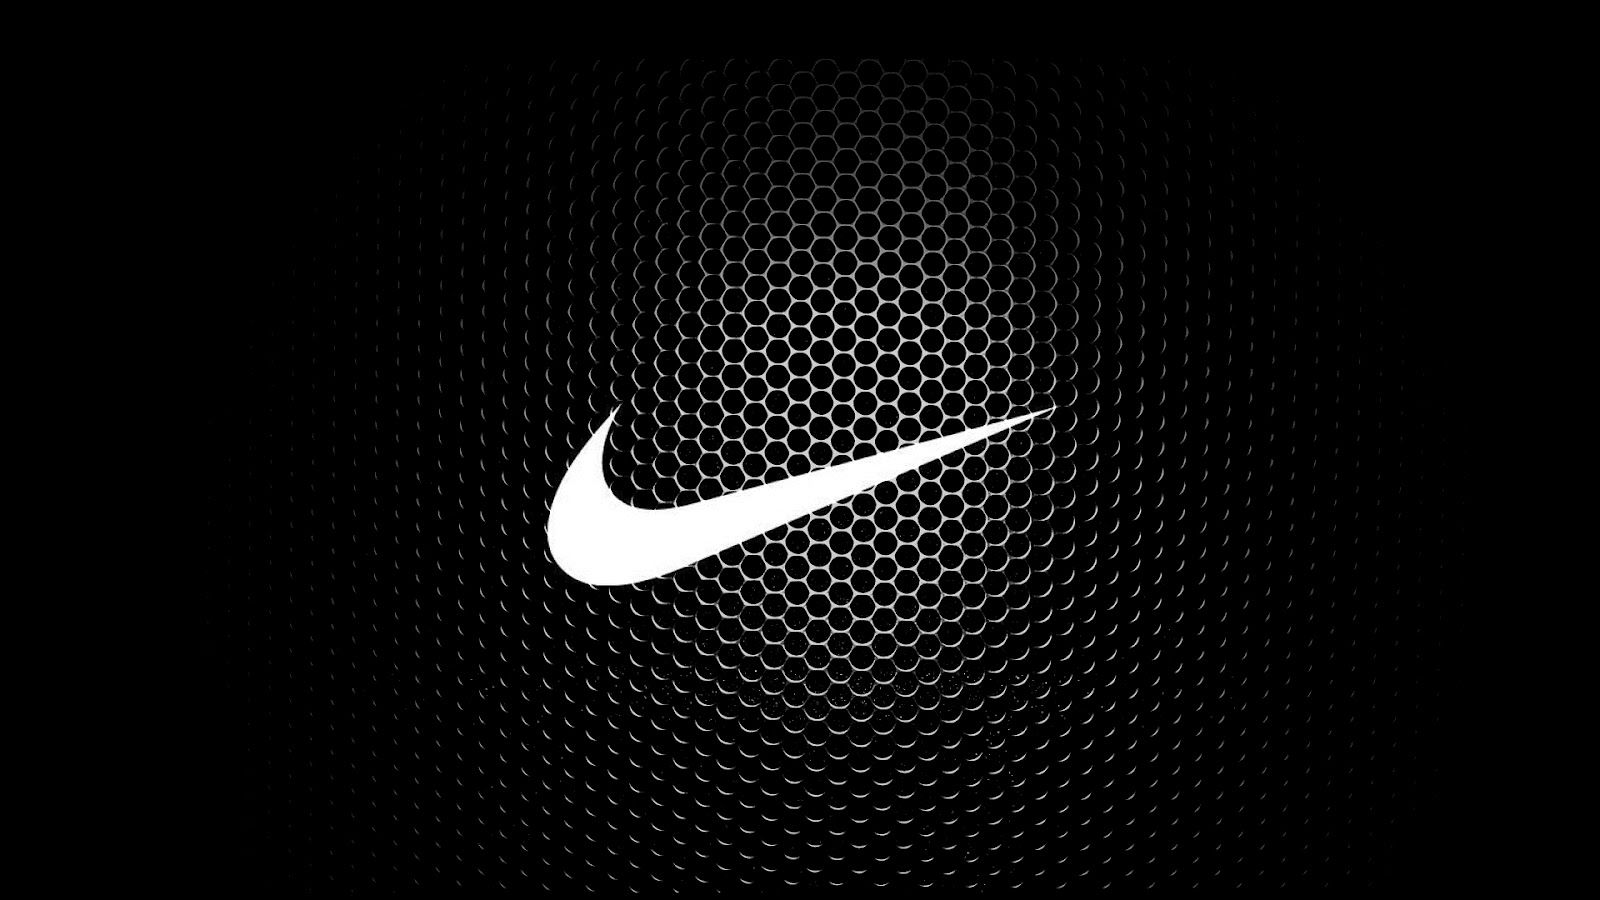 NikeHDWallpaper.jpg (1600×900) Hockey Pinterest